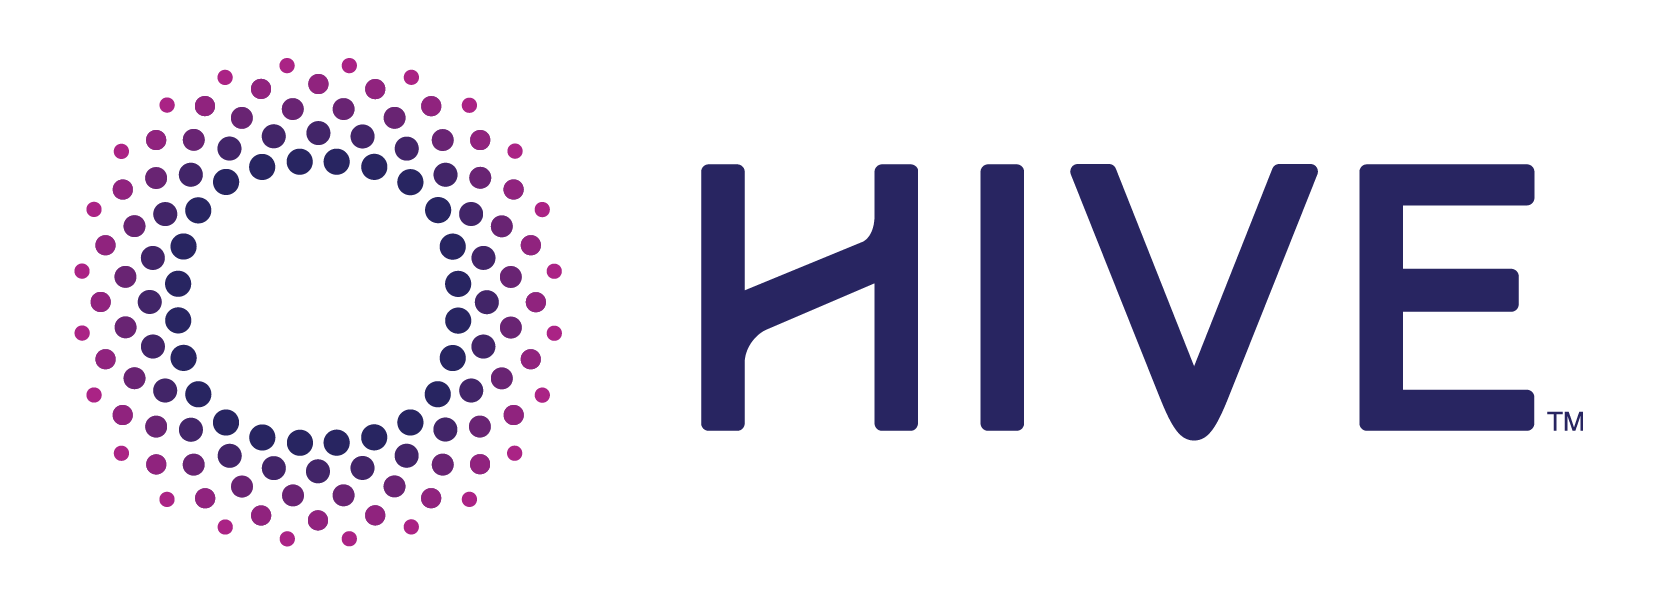 Hive home logo pictures.